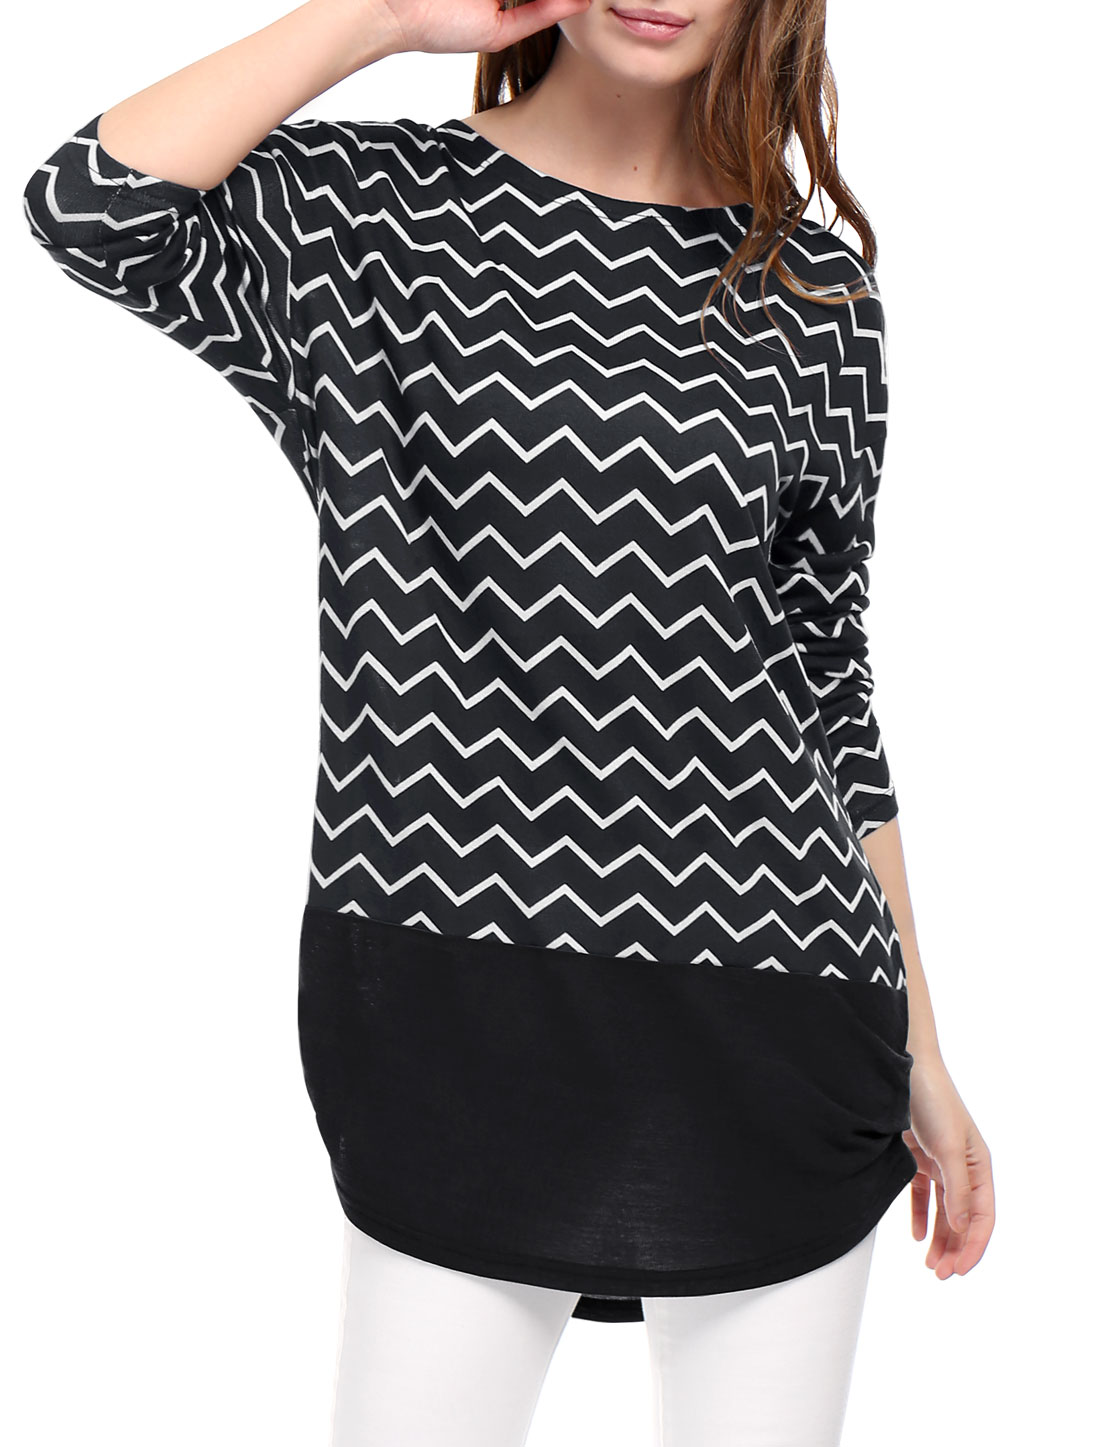 Women Long Sleeves Ruched Sides Chevron Loose Tunic Top Black XL